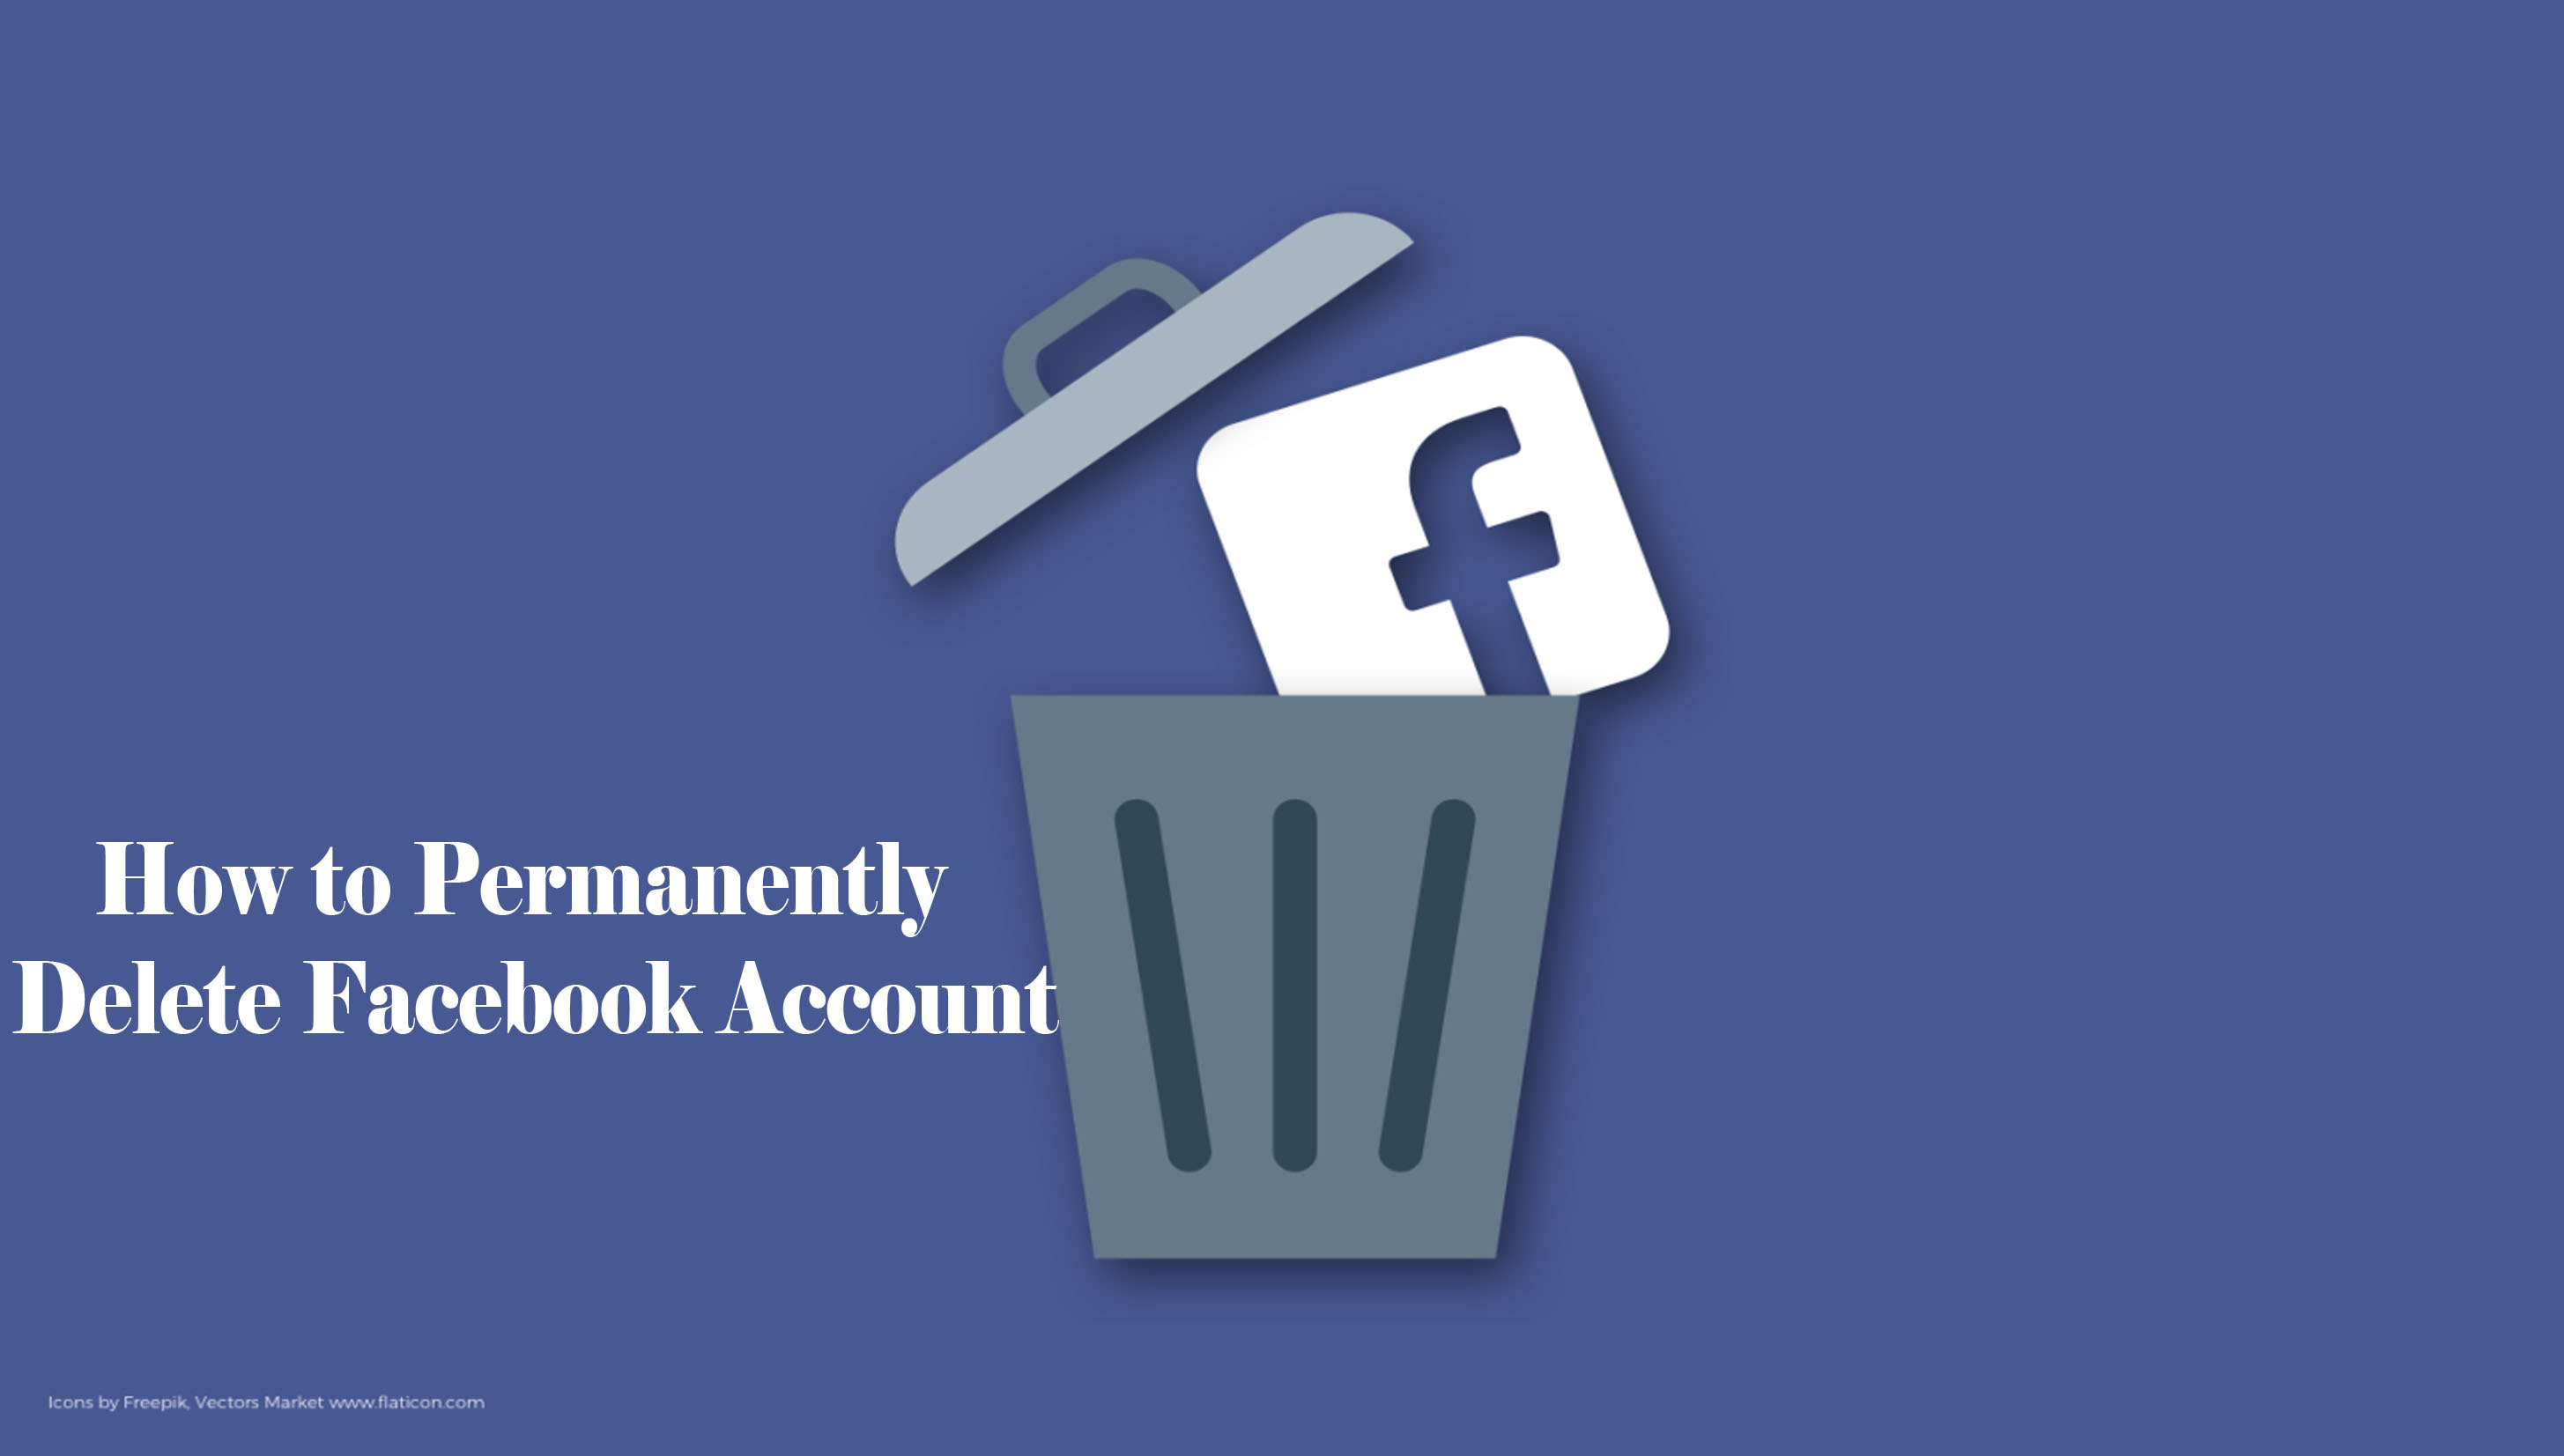 How to Permanently Delete Facebook Account – All you Need to Know